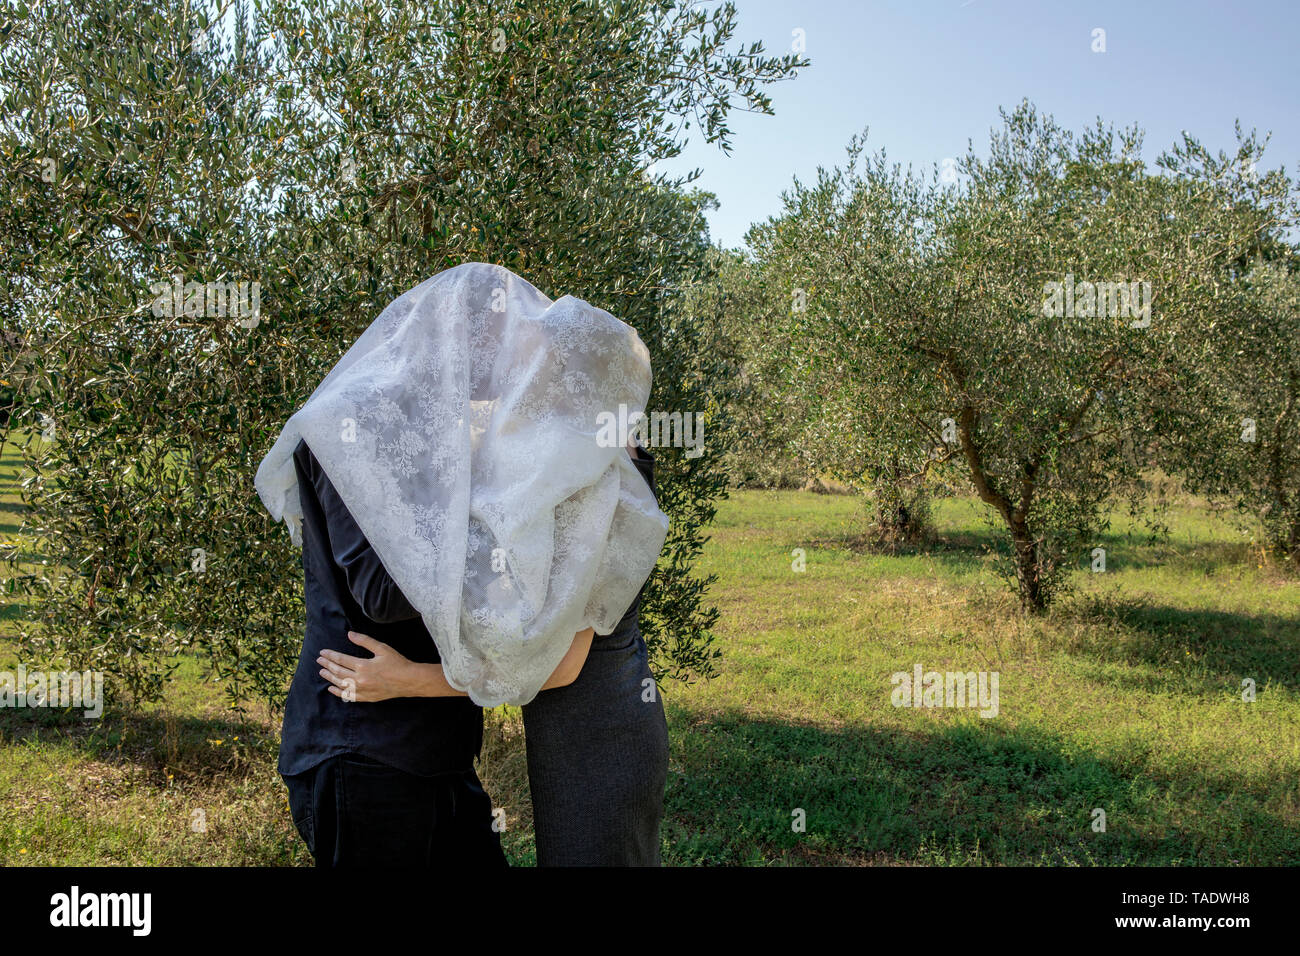 Italy, Tuscany, couple in olive grove kissing under a cloth - Stock Image